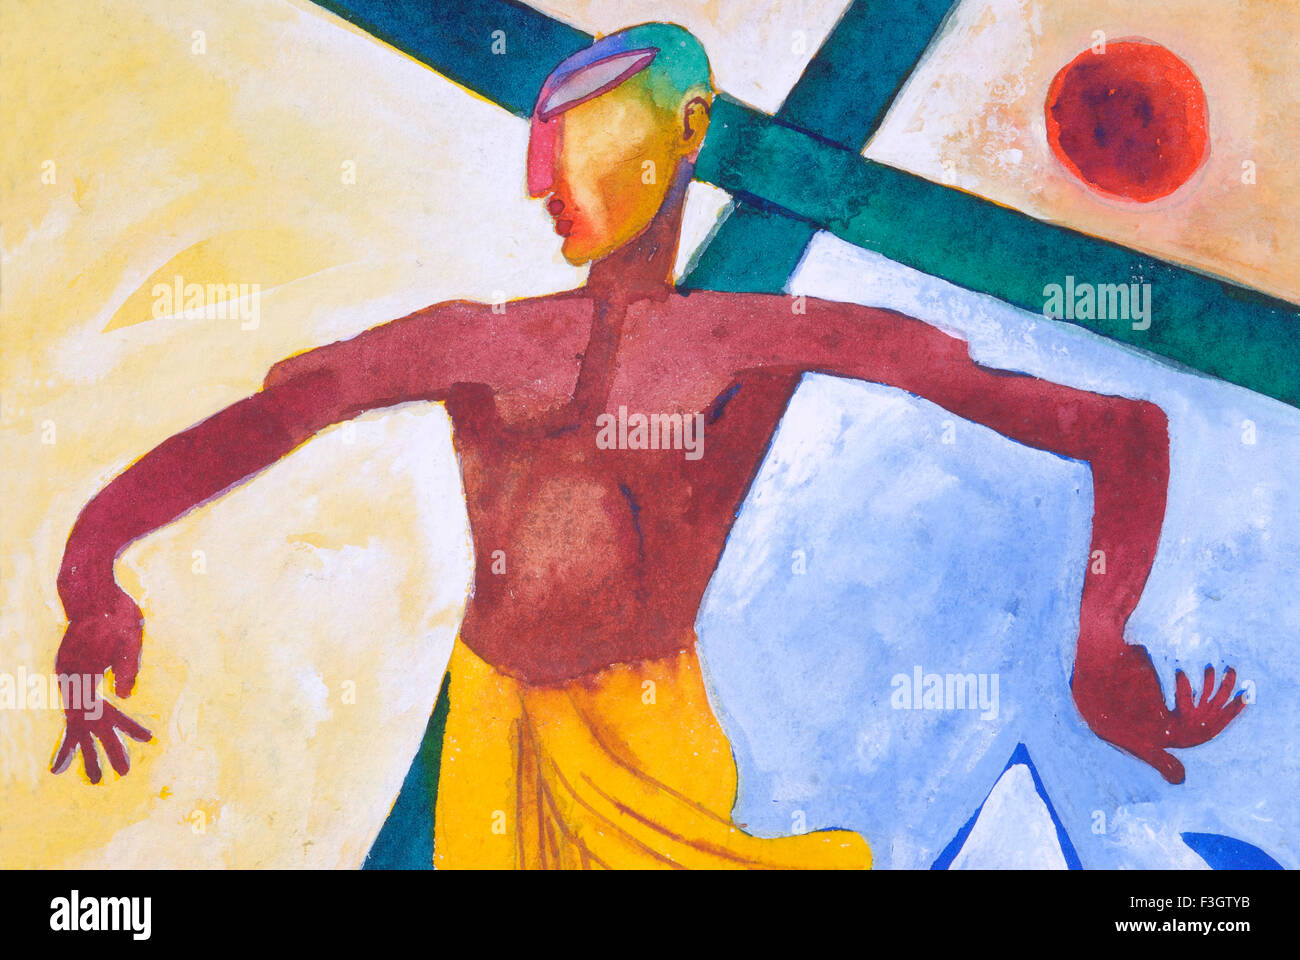 Christ on cross watercolor painting on handmade paper - Stock Image